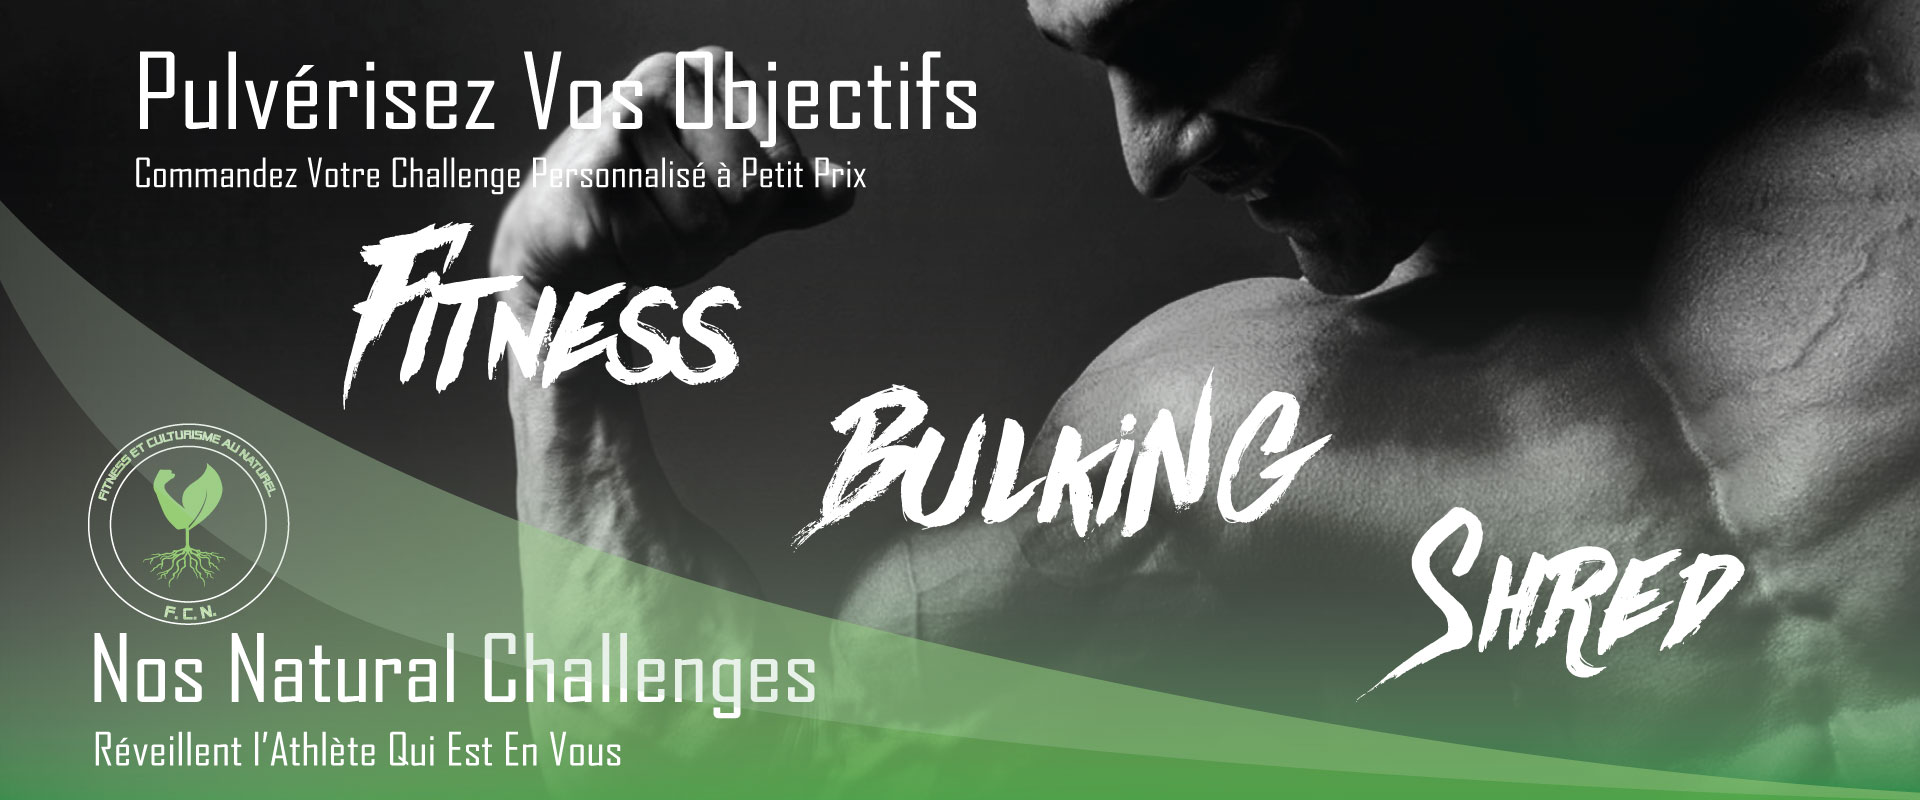 ArticleAcces_Challenges2